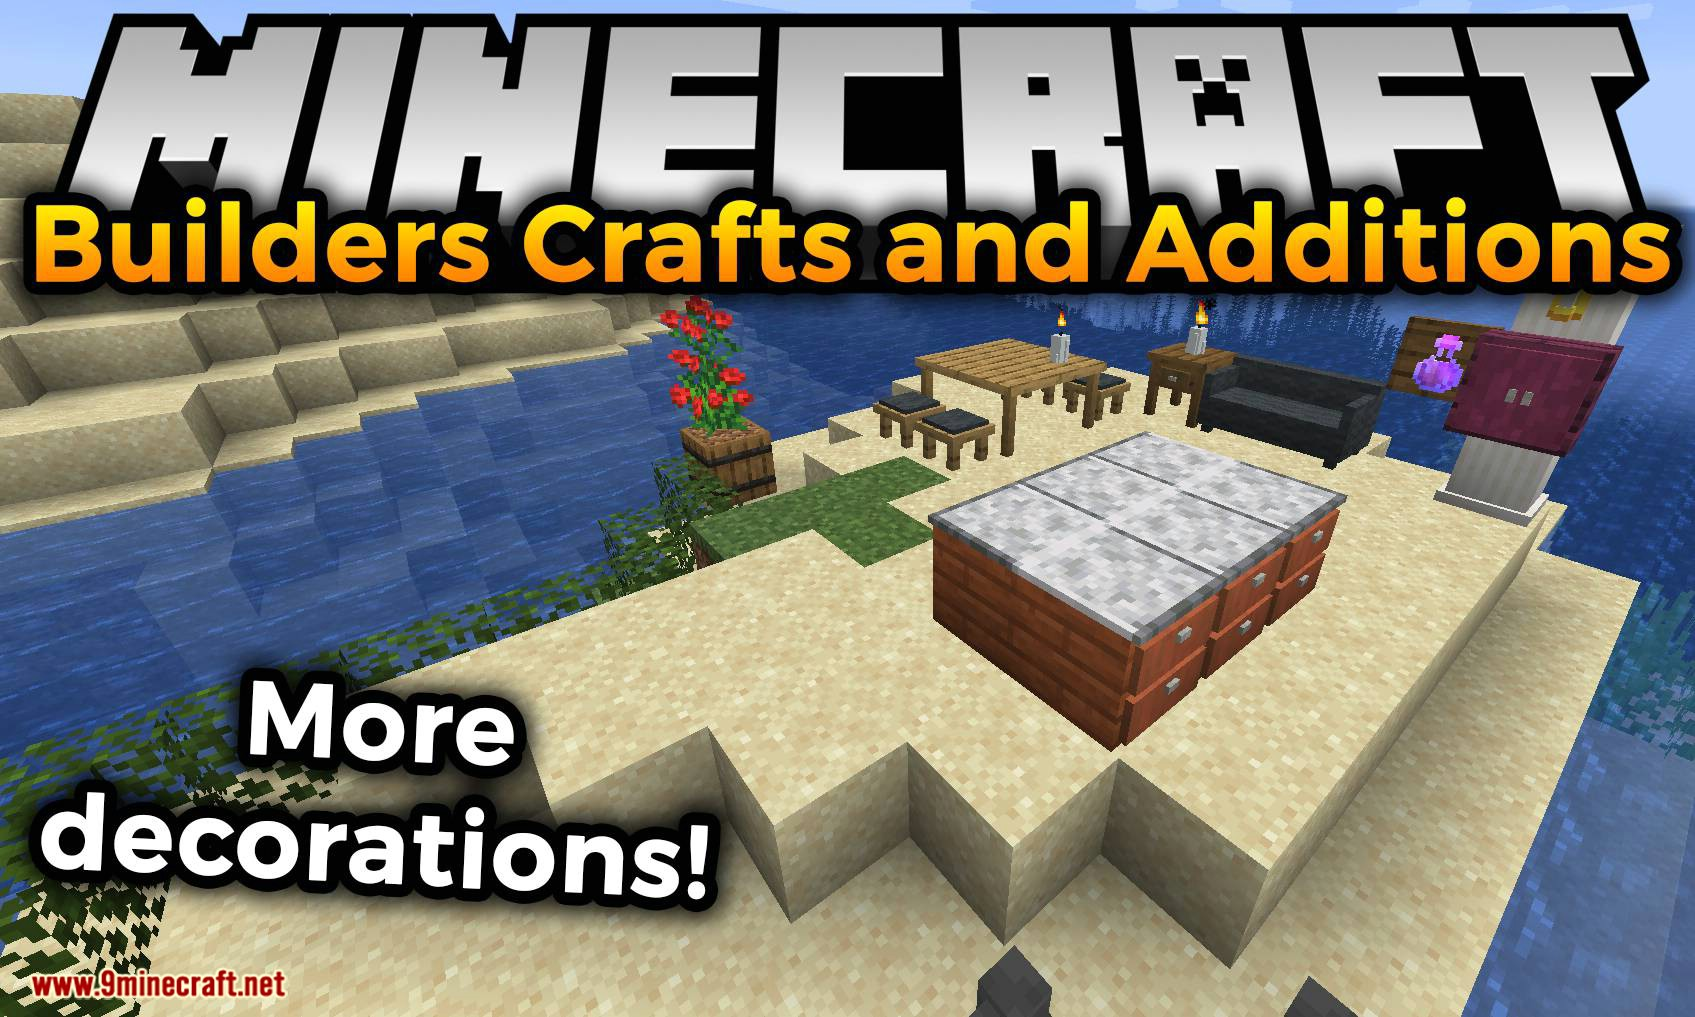 Builders Crafts Additions Mod 1 16 5 1 16 2 Too Many Decorations 9minecraft Net